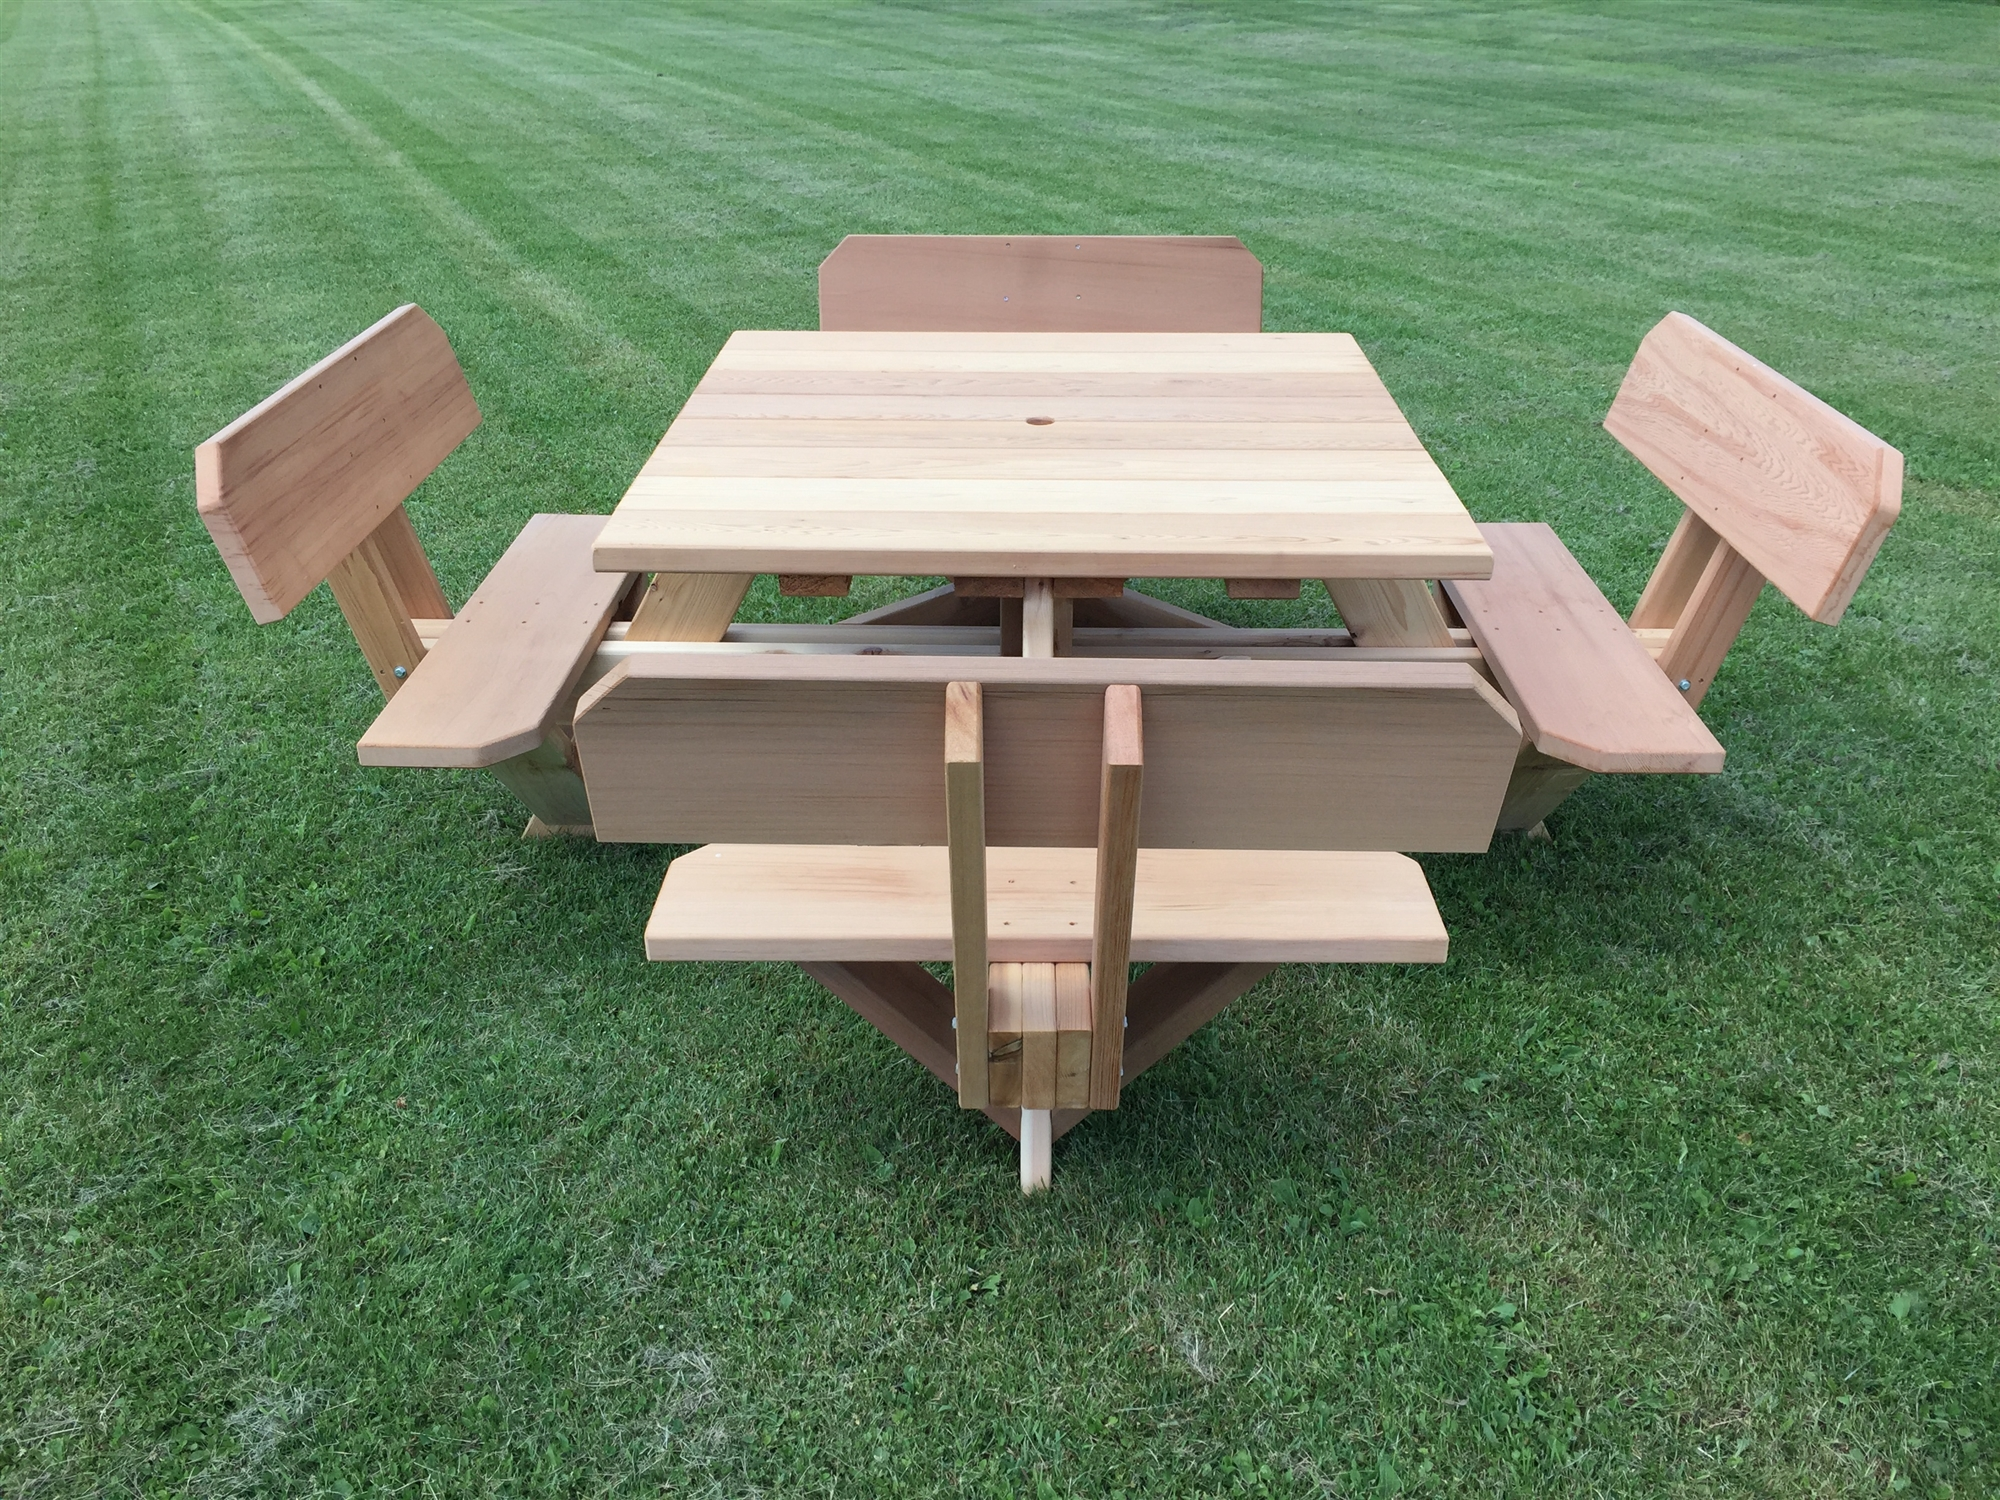 Square Patio Table with Umbrella Hole  45 Picnic Table